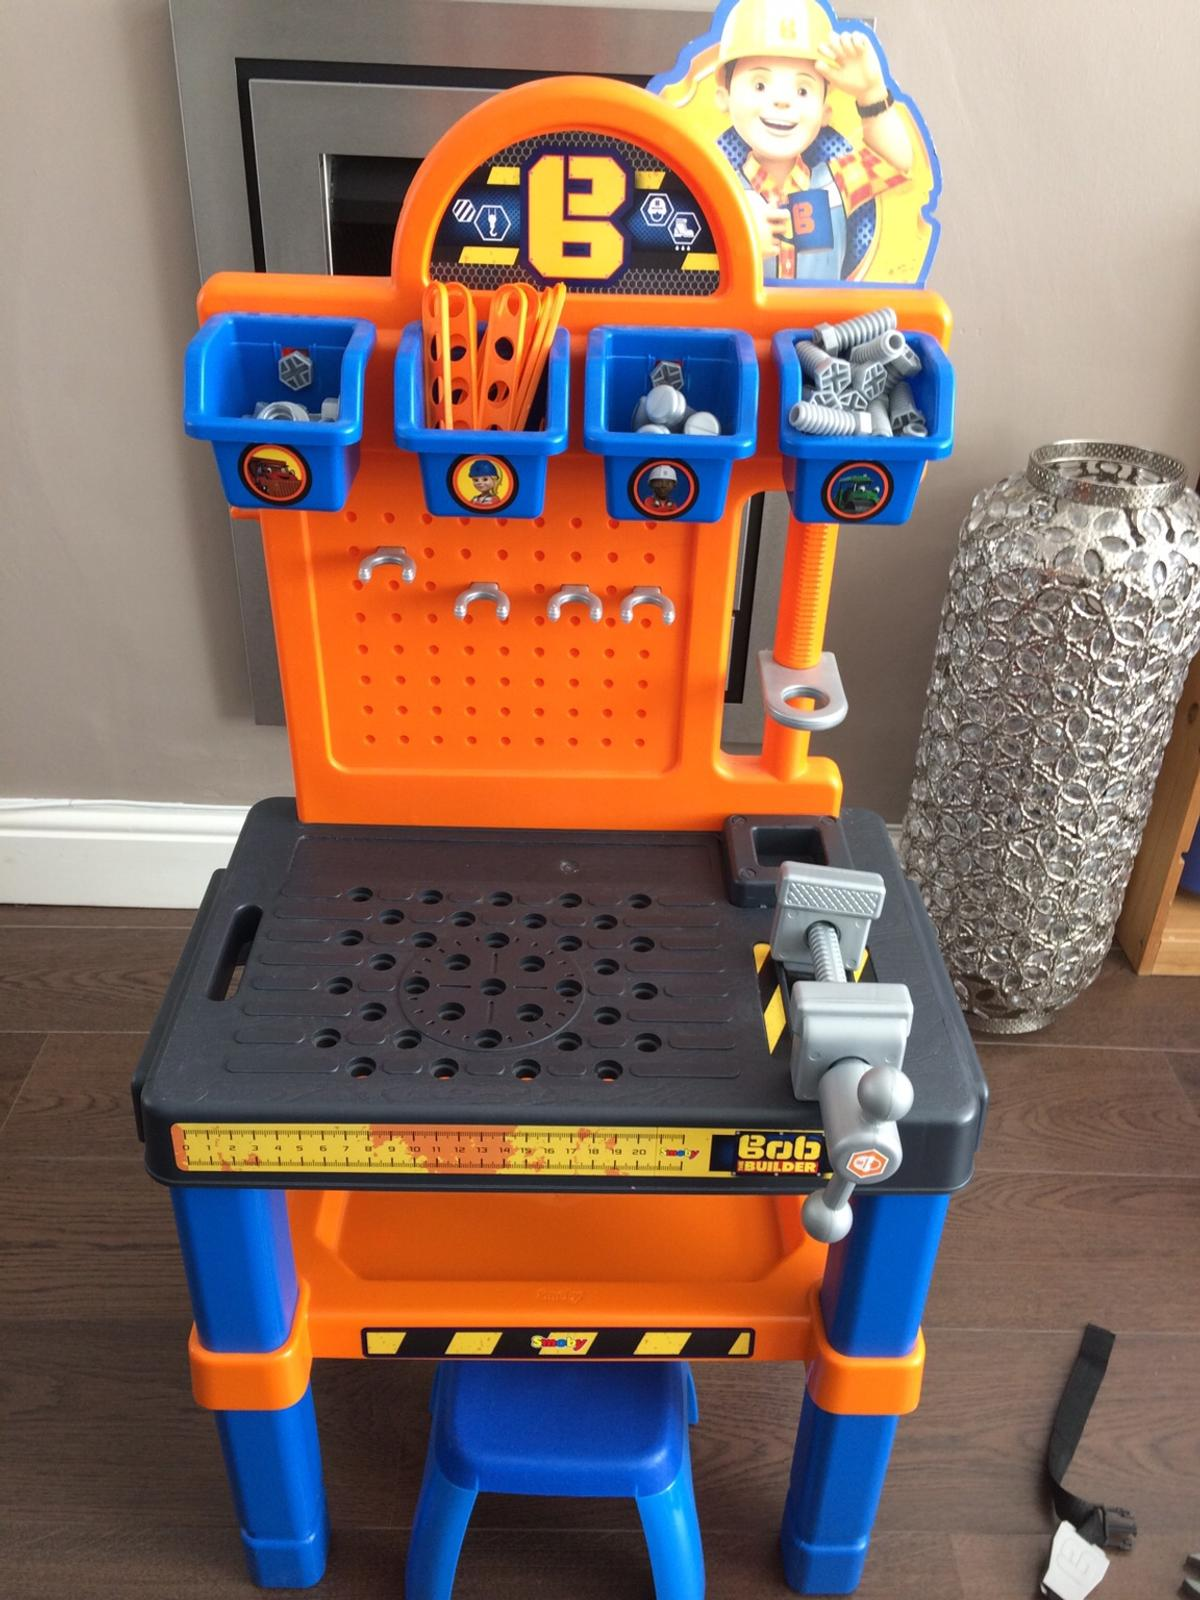 Excellent Bob The Builder Work Bench Tools Stool In L12 Liverpool For Gmtry Best Dining Table And Chair Ideas Images Gmtryco